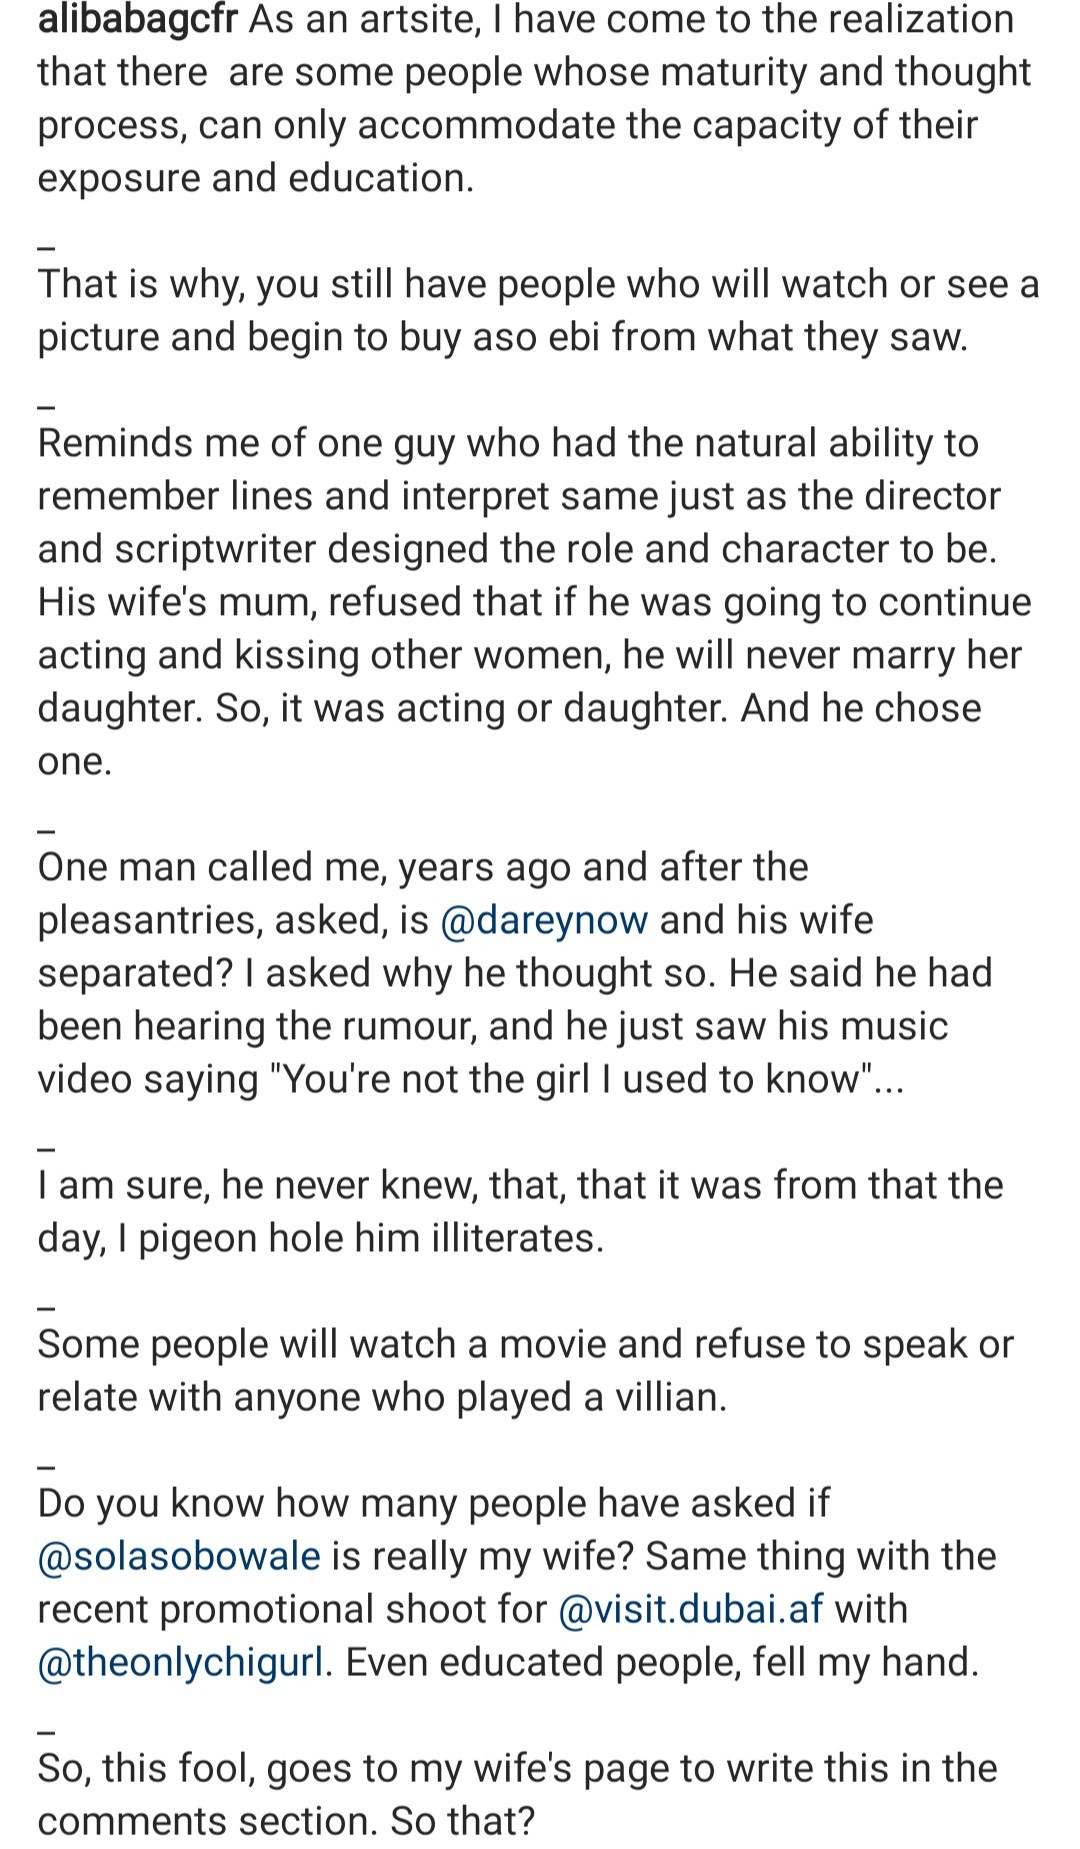 Ali Baba calls out woman who reported to his wife